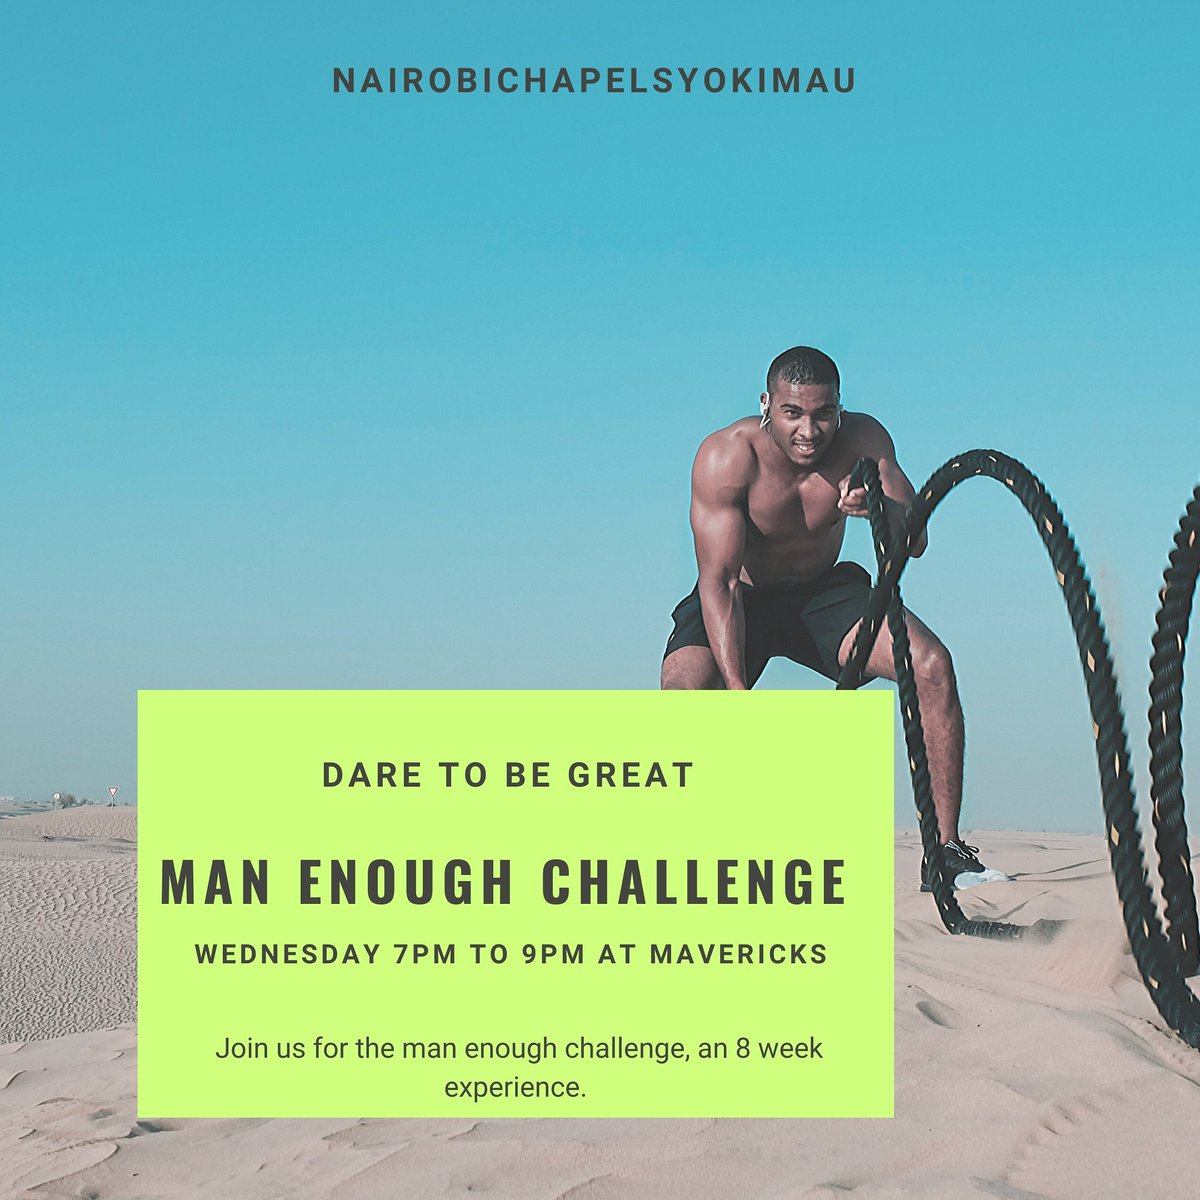 Man Enough Challenge, Syokimau Edition. Launching on Wednesday 7Pm to 9pm at Gateway Mall, Mavericks Restaurant. If your in Syokimau join using this link. #syokimau #manenough #Nairobichapelsyokimau  https://chat.whatsapp.com/E9WetN3EtmOHaxwtrwrlaM …  #MondayMotivationpic.twitter.com/PYvSA2nha5